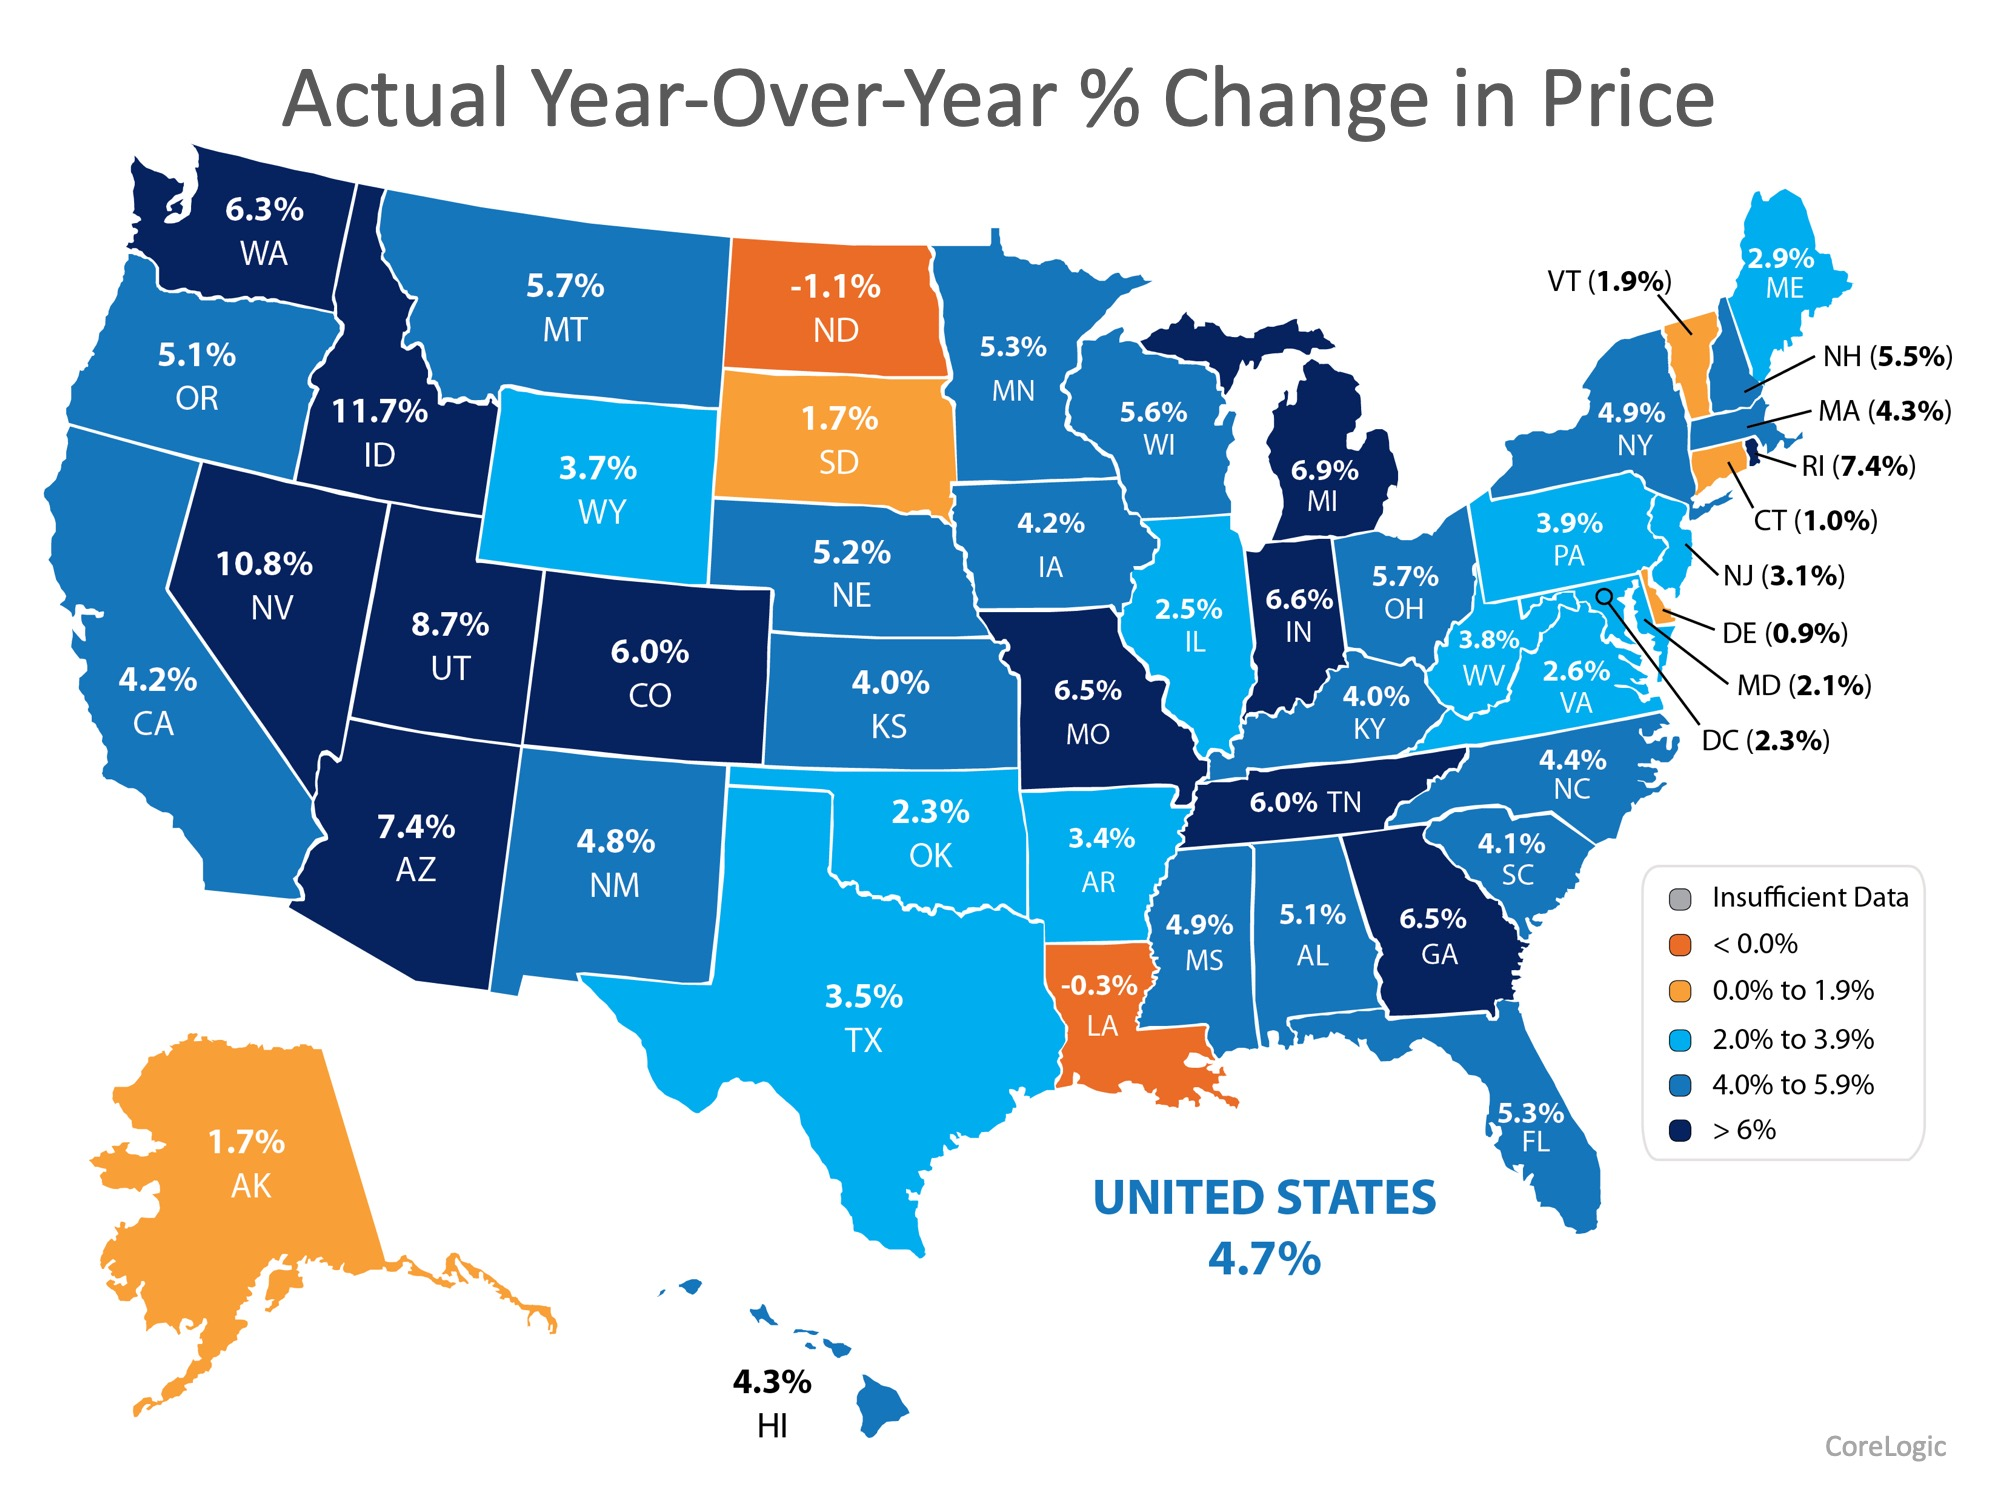 United States Map with Different Colors and Actual Percentages for the Year-Over-Year Change in Price